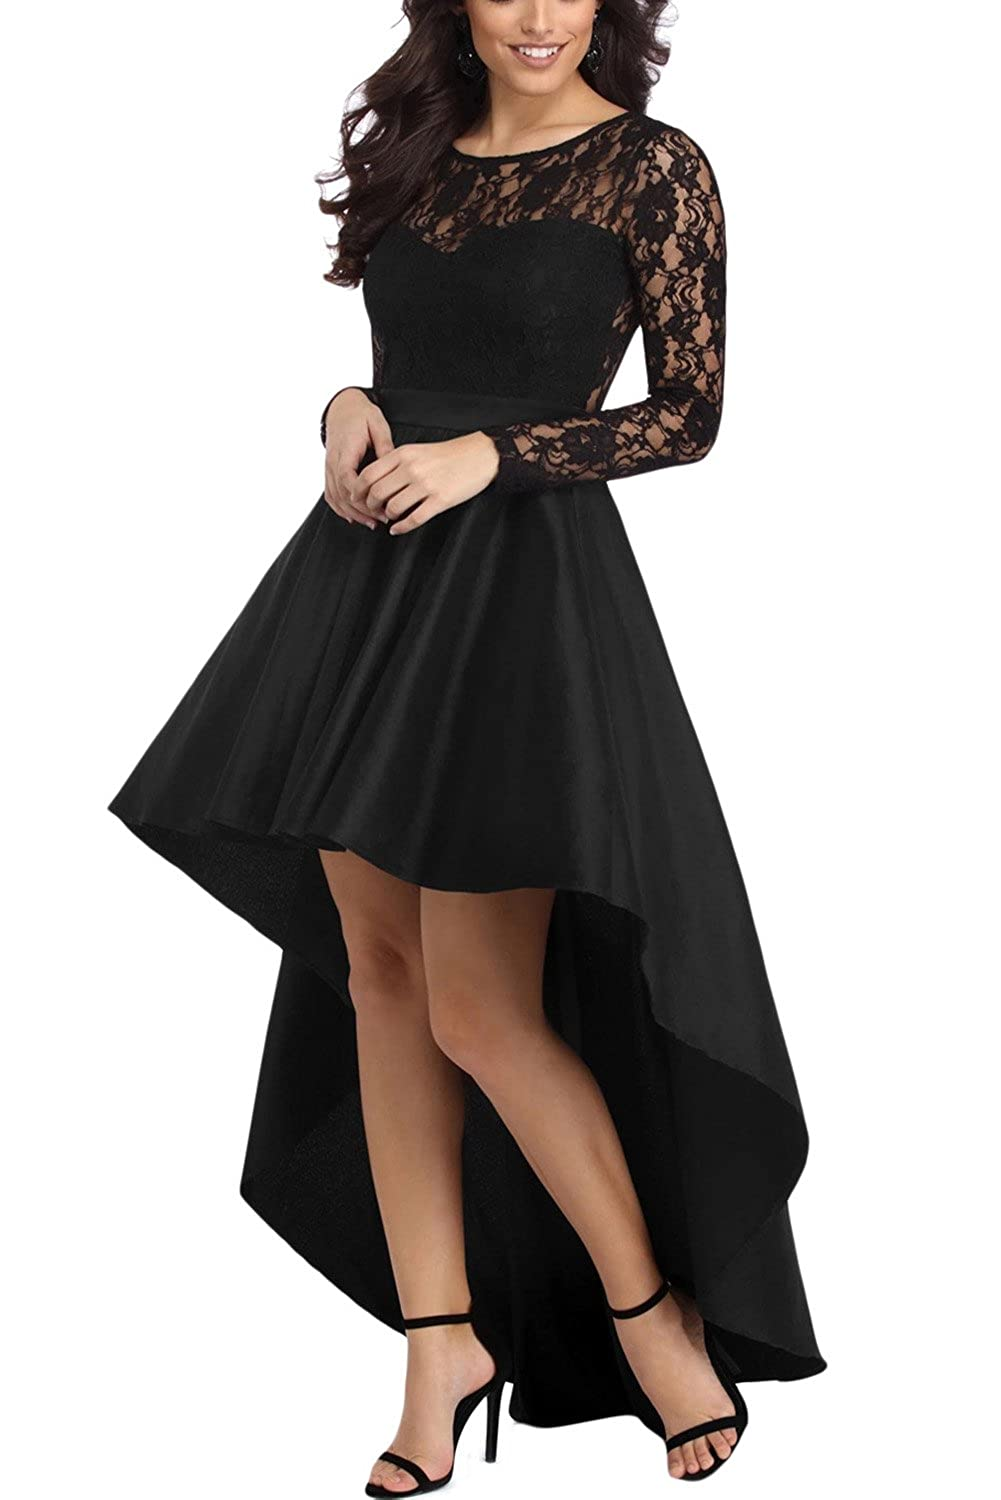 Steampunk Dresses | Women & Girl Costumes Bdcoco Womens Vintage Lace Long Sleeve High Low Cocktail Party Dress $24.99 AT vintagedancer.com